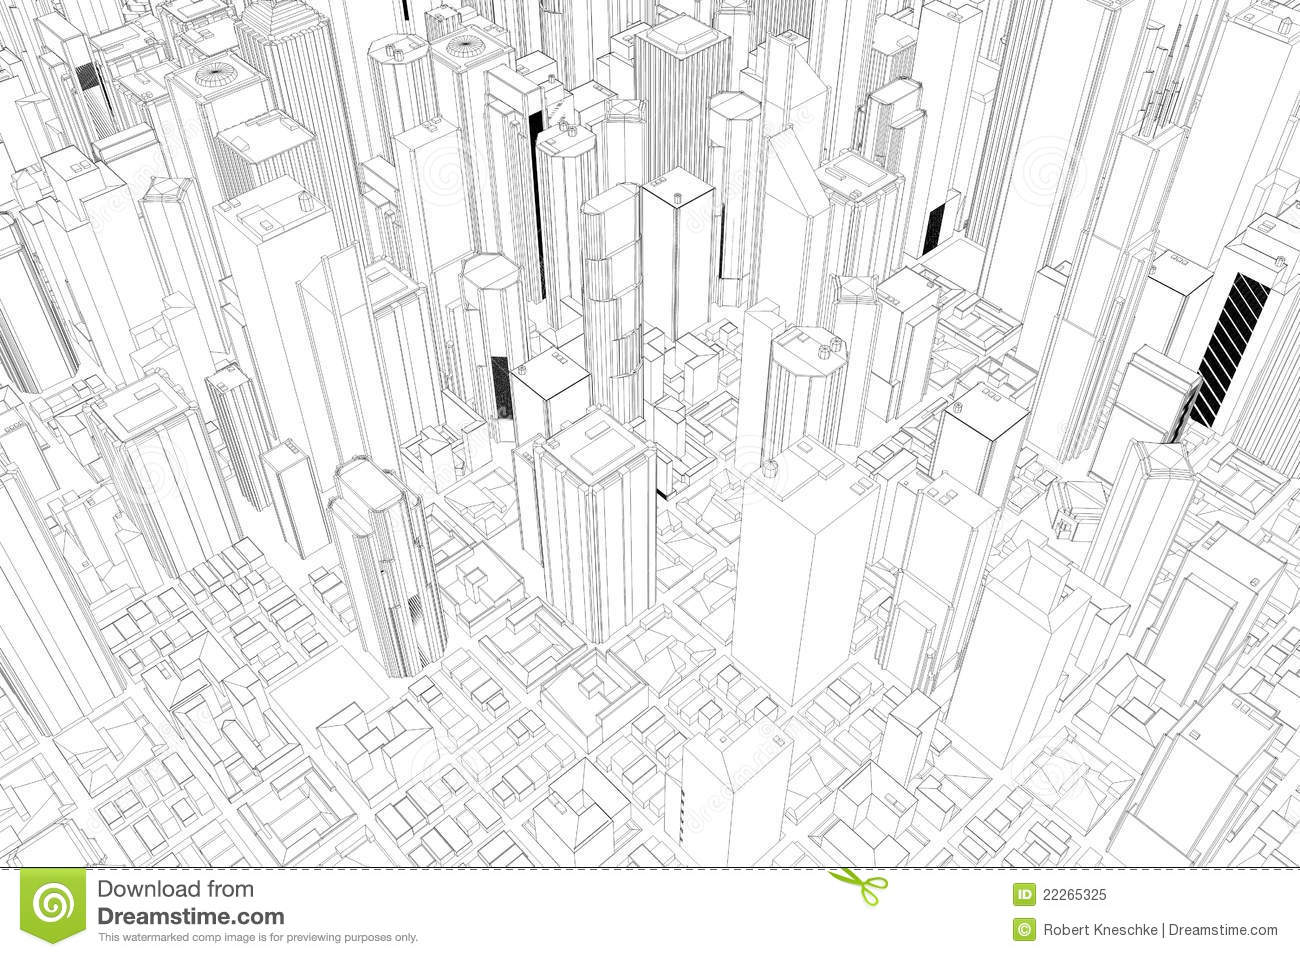 Architectural Drawings Of Skyscrapers architectural drawing of city royalty free stock photo - image